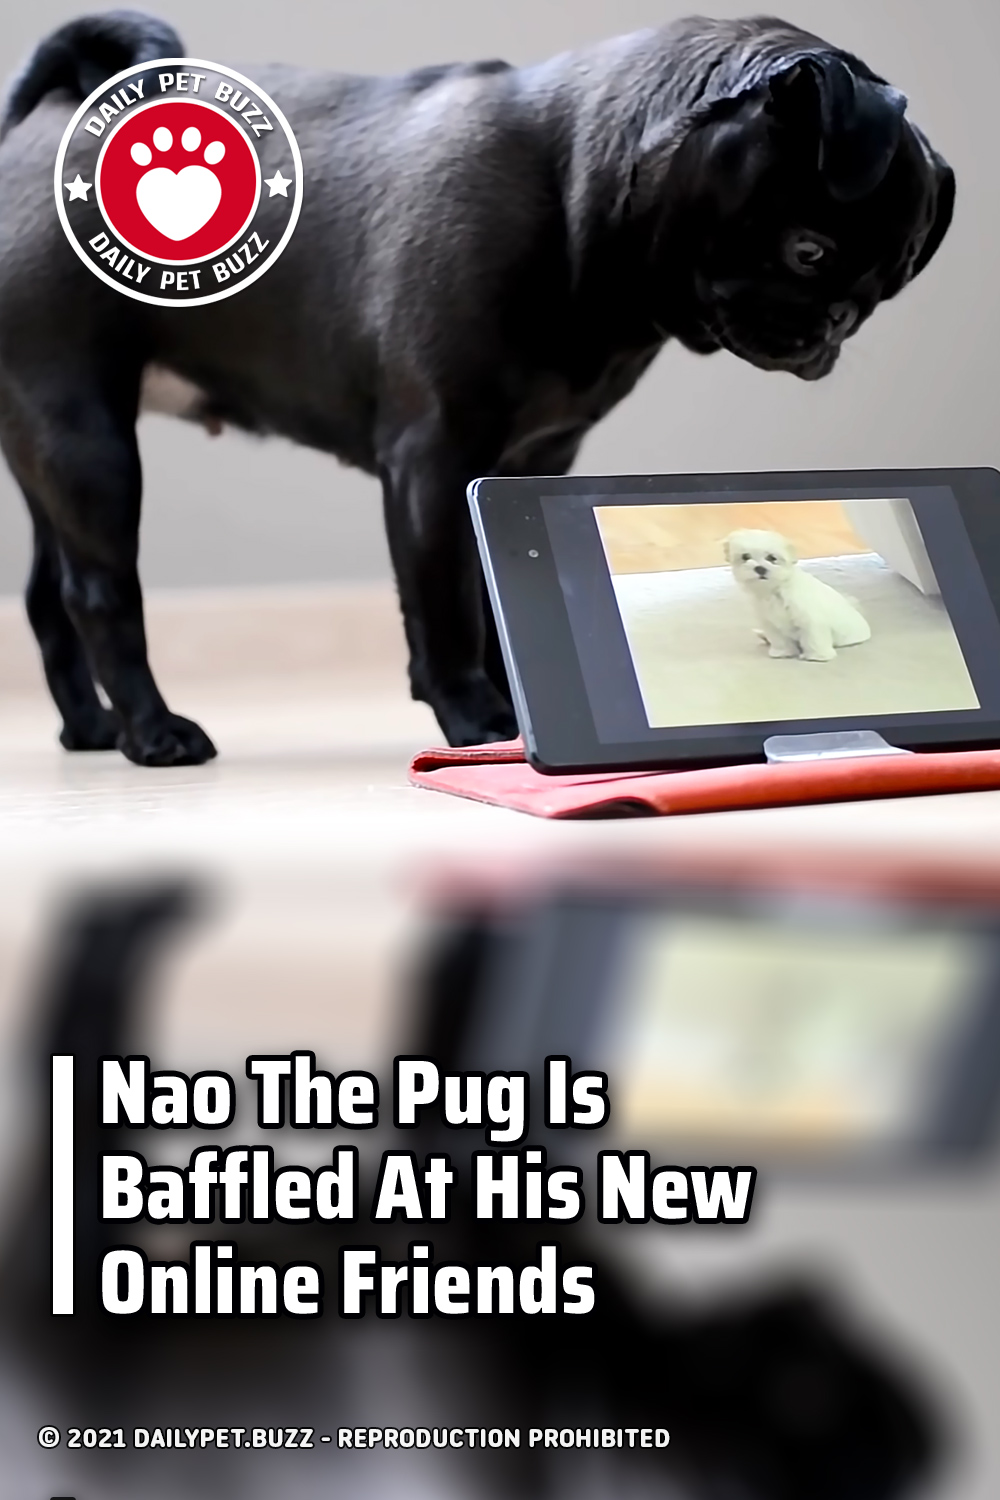 Nao The Pug Is Baffled At His New Online Friends